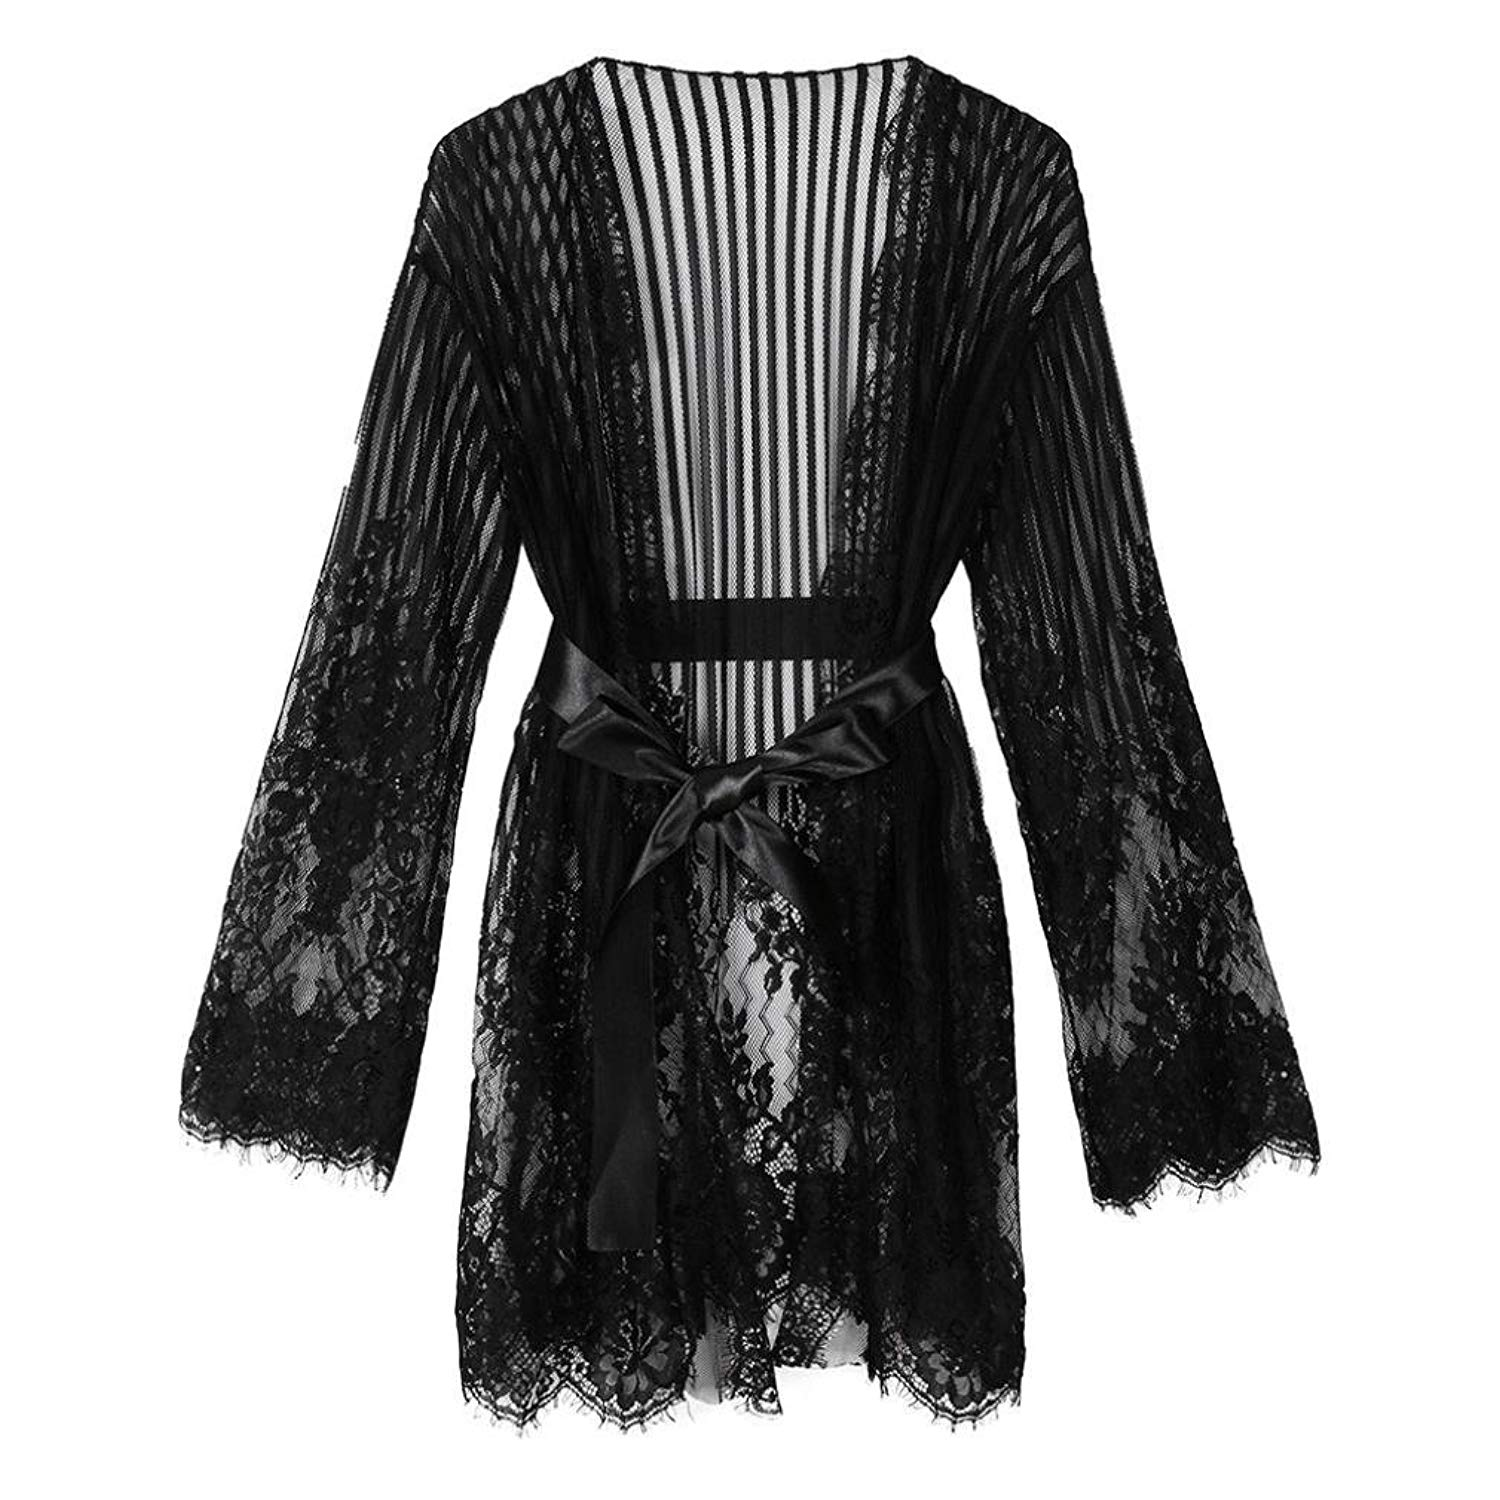 bfd5b797439 Get Quotations · Cywulin Women s Sexy Plus Size Lace Kimono Robe Floral  Babydoll Long Sleeve Lingerie Mesh Nightgown Sheer